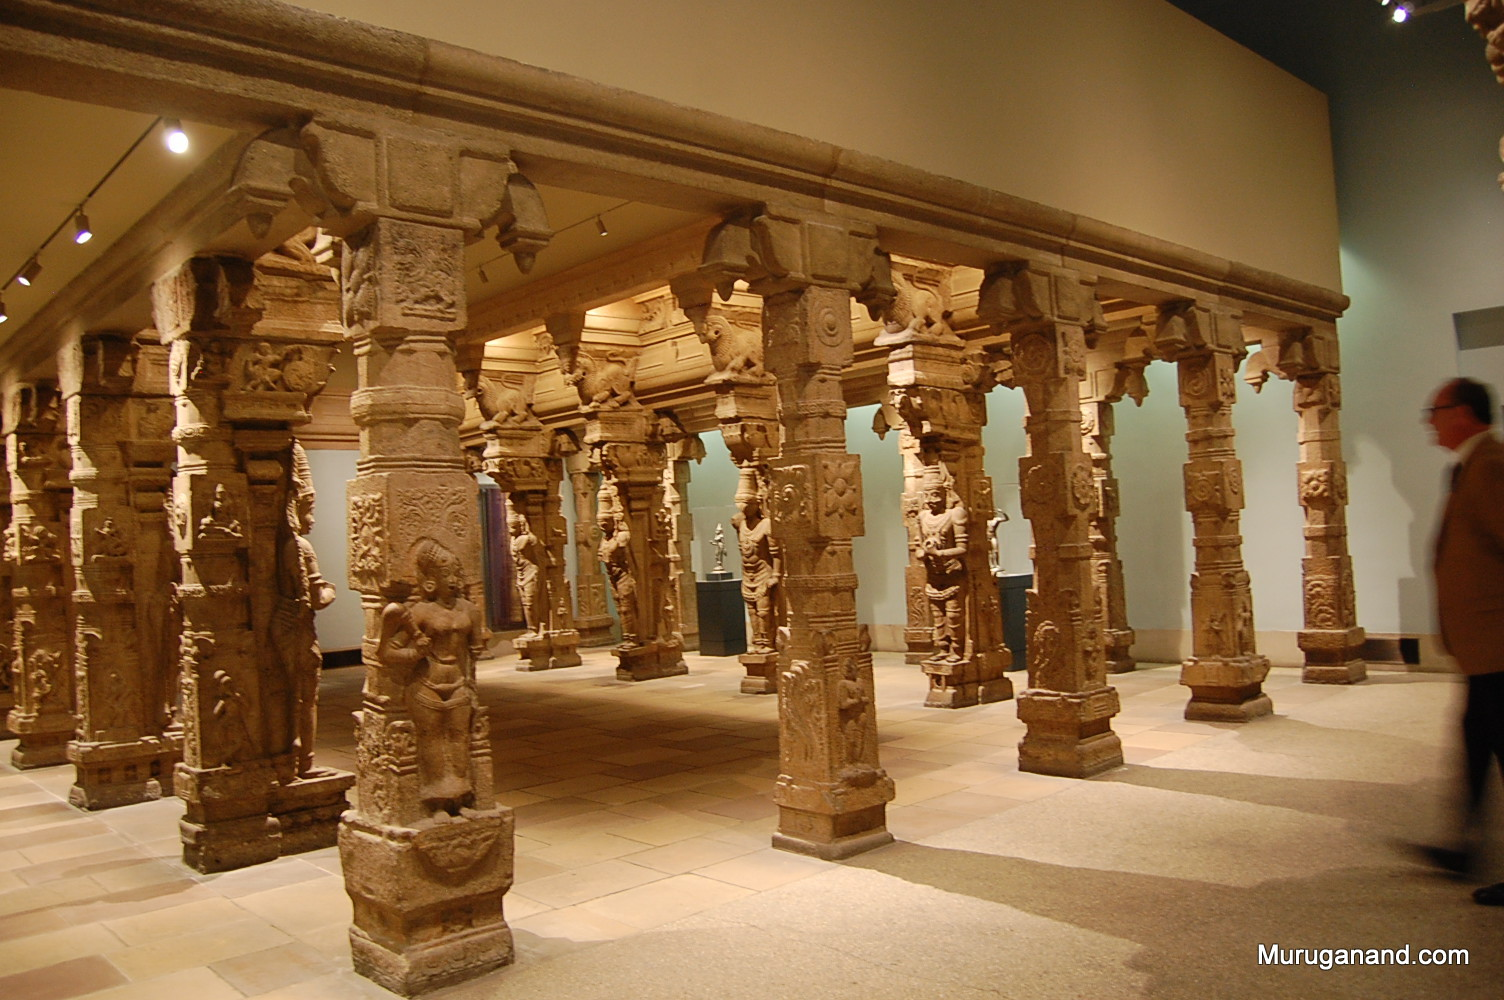 Additional row of pillars is seen in the photo taken diagonally.